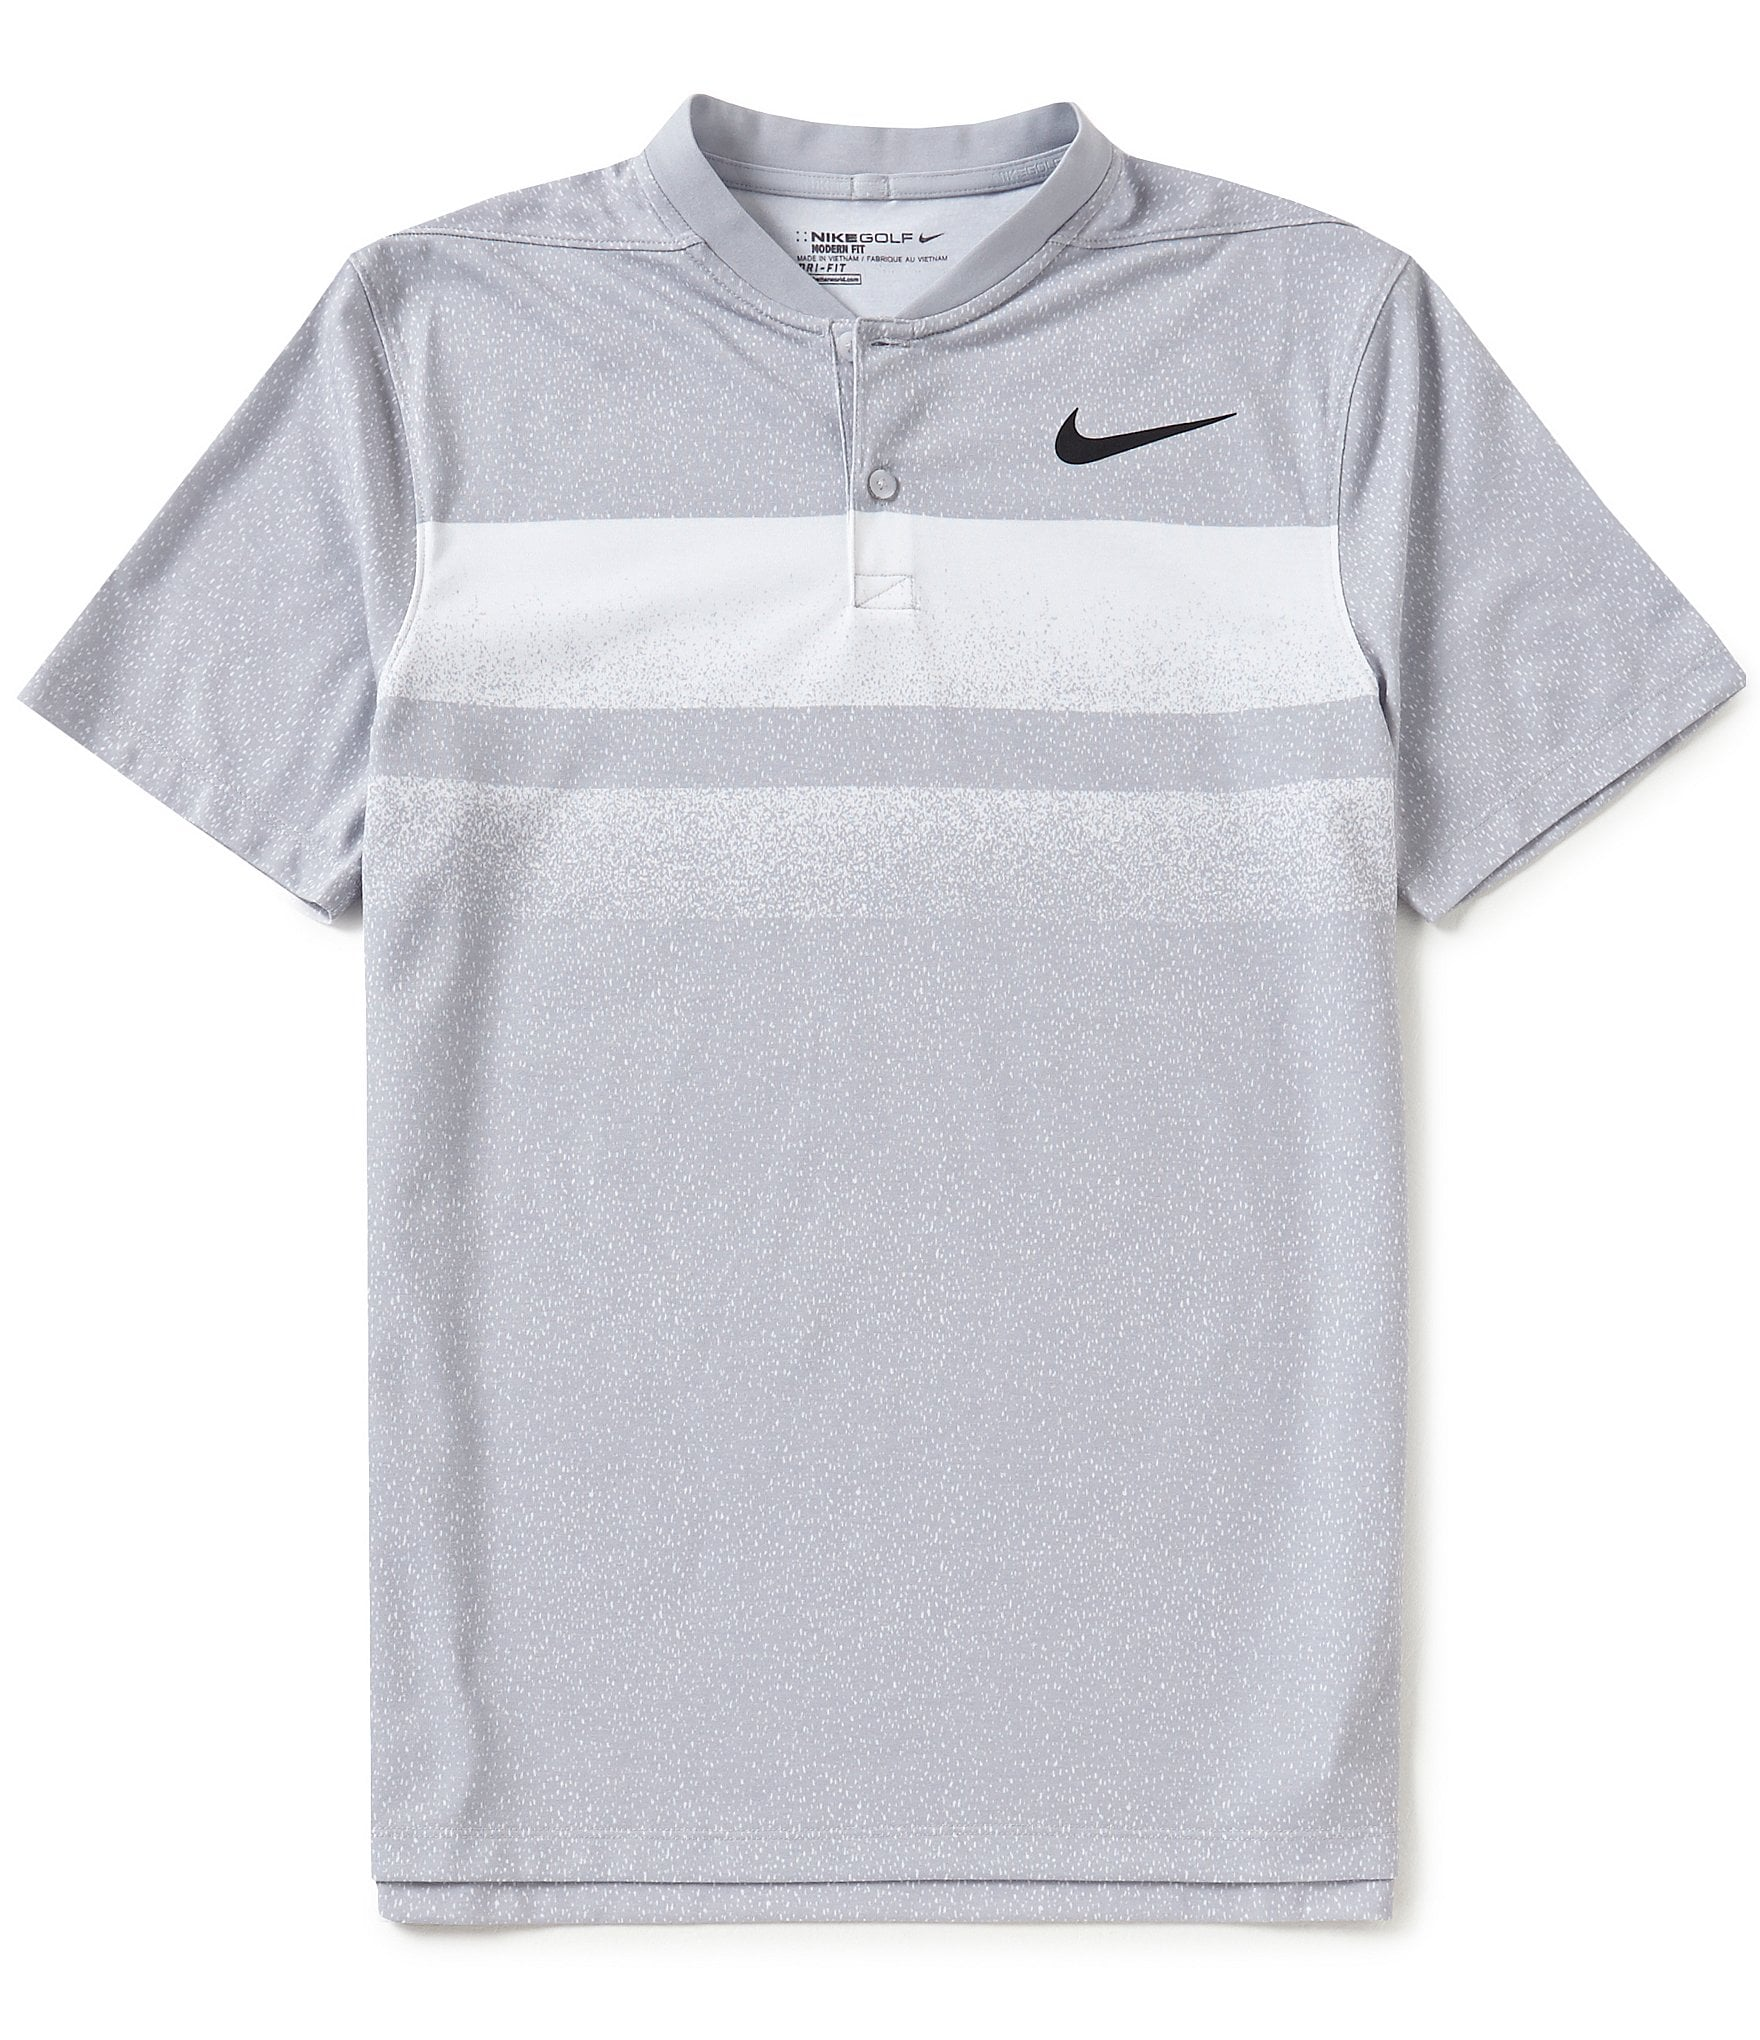 Nike golf transition modern fit dri fit polo shirt dillards Modern fit golf shirt